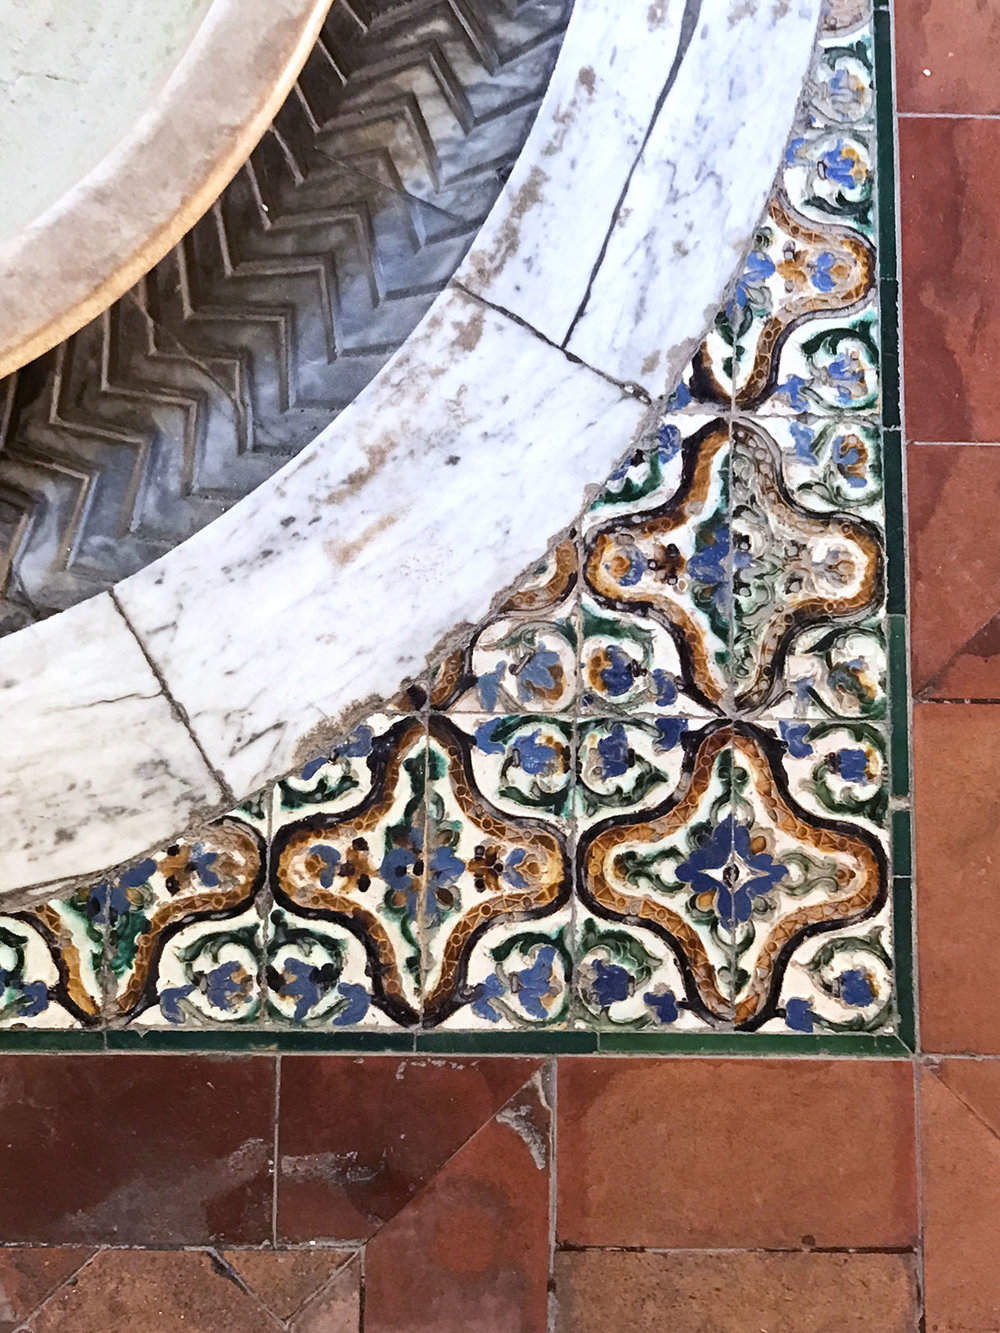 Hall of Justice tile at the Alcázar in Seville, Spain